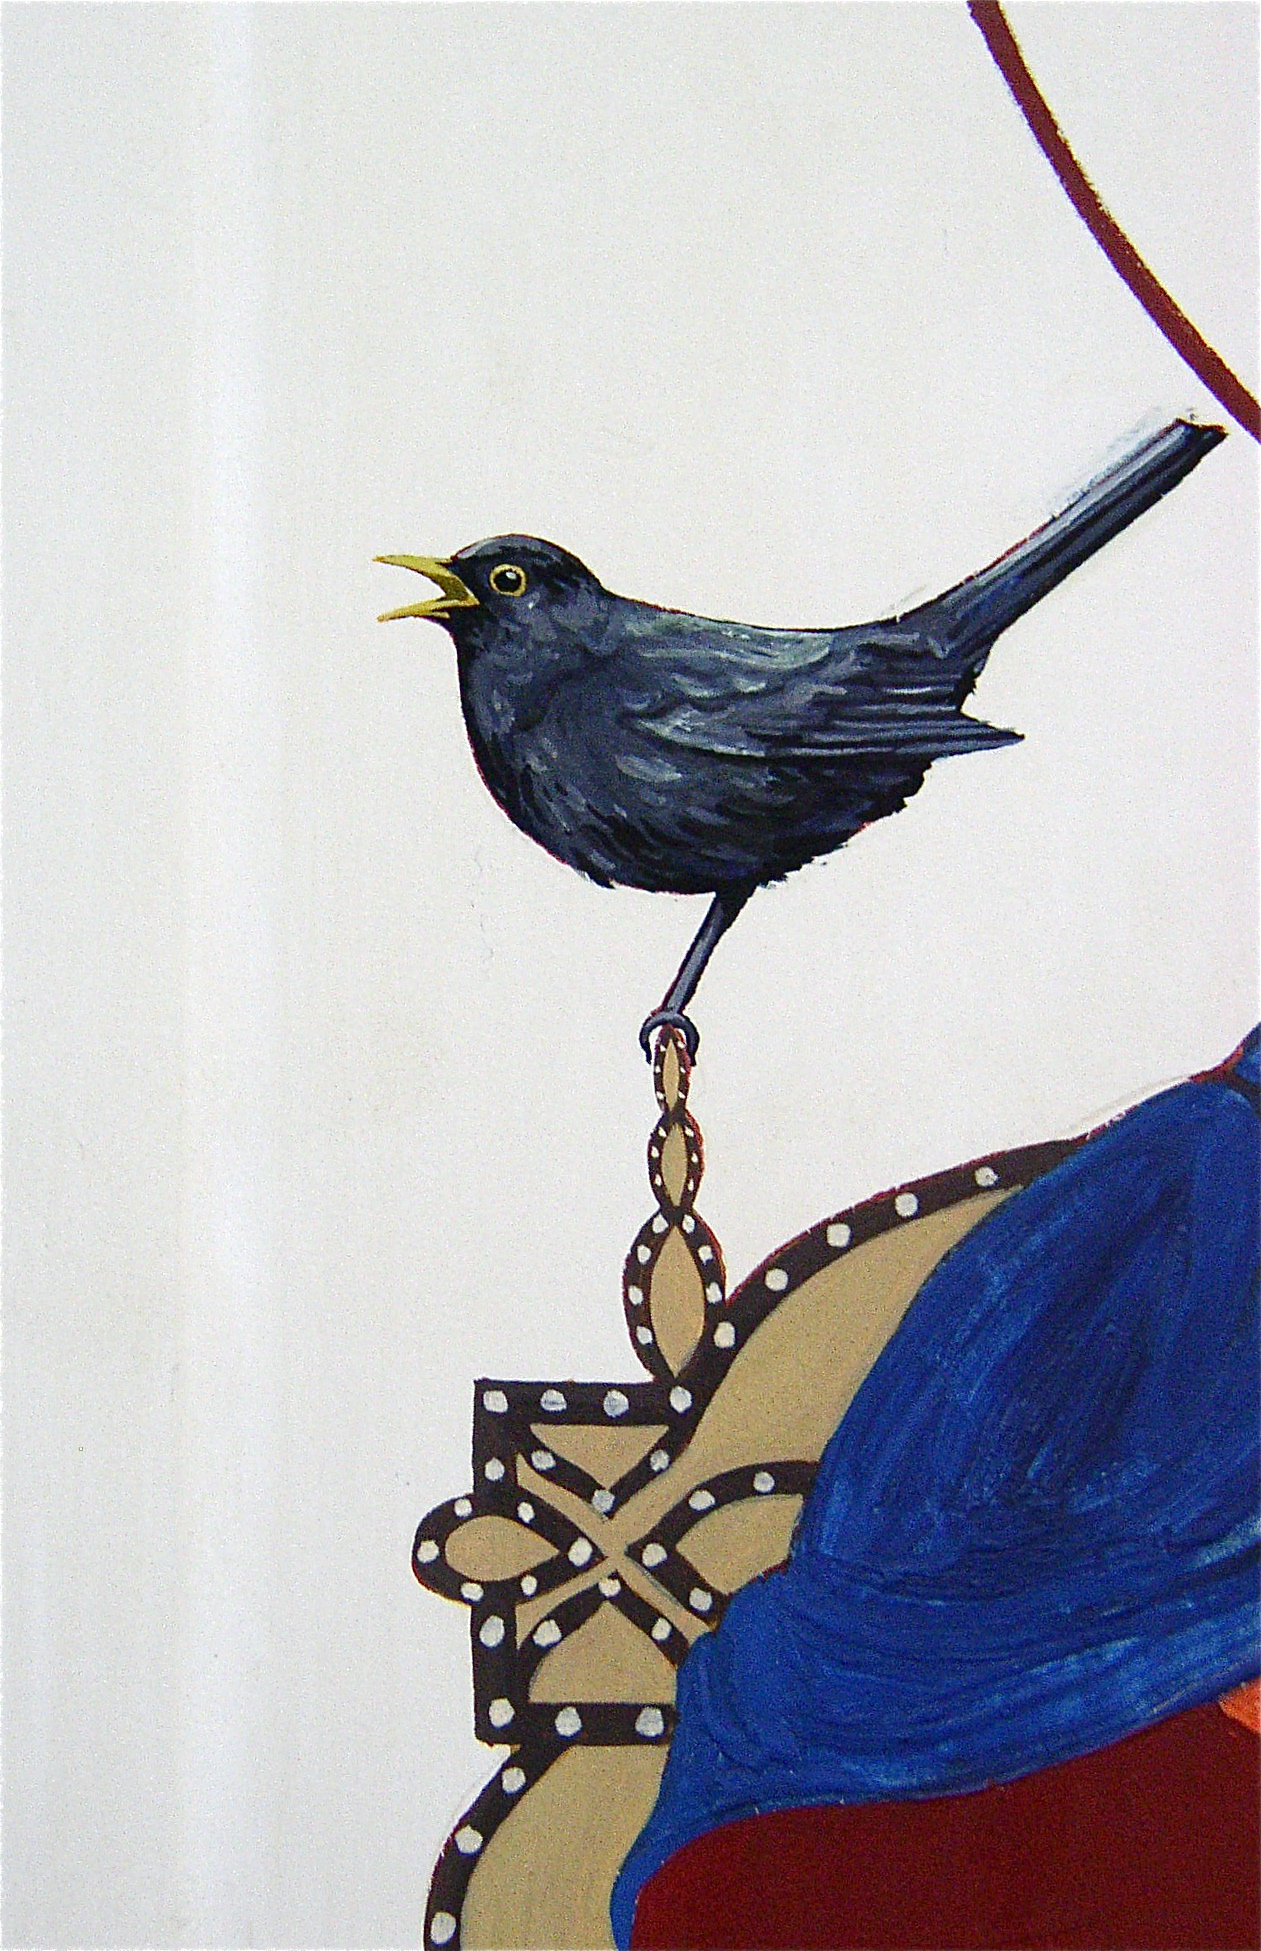 Regan O'Callaghan Blackbird, I heard a blackbird sing, egg tempera, religious icon, halo